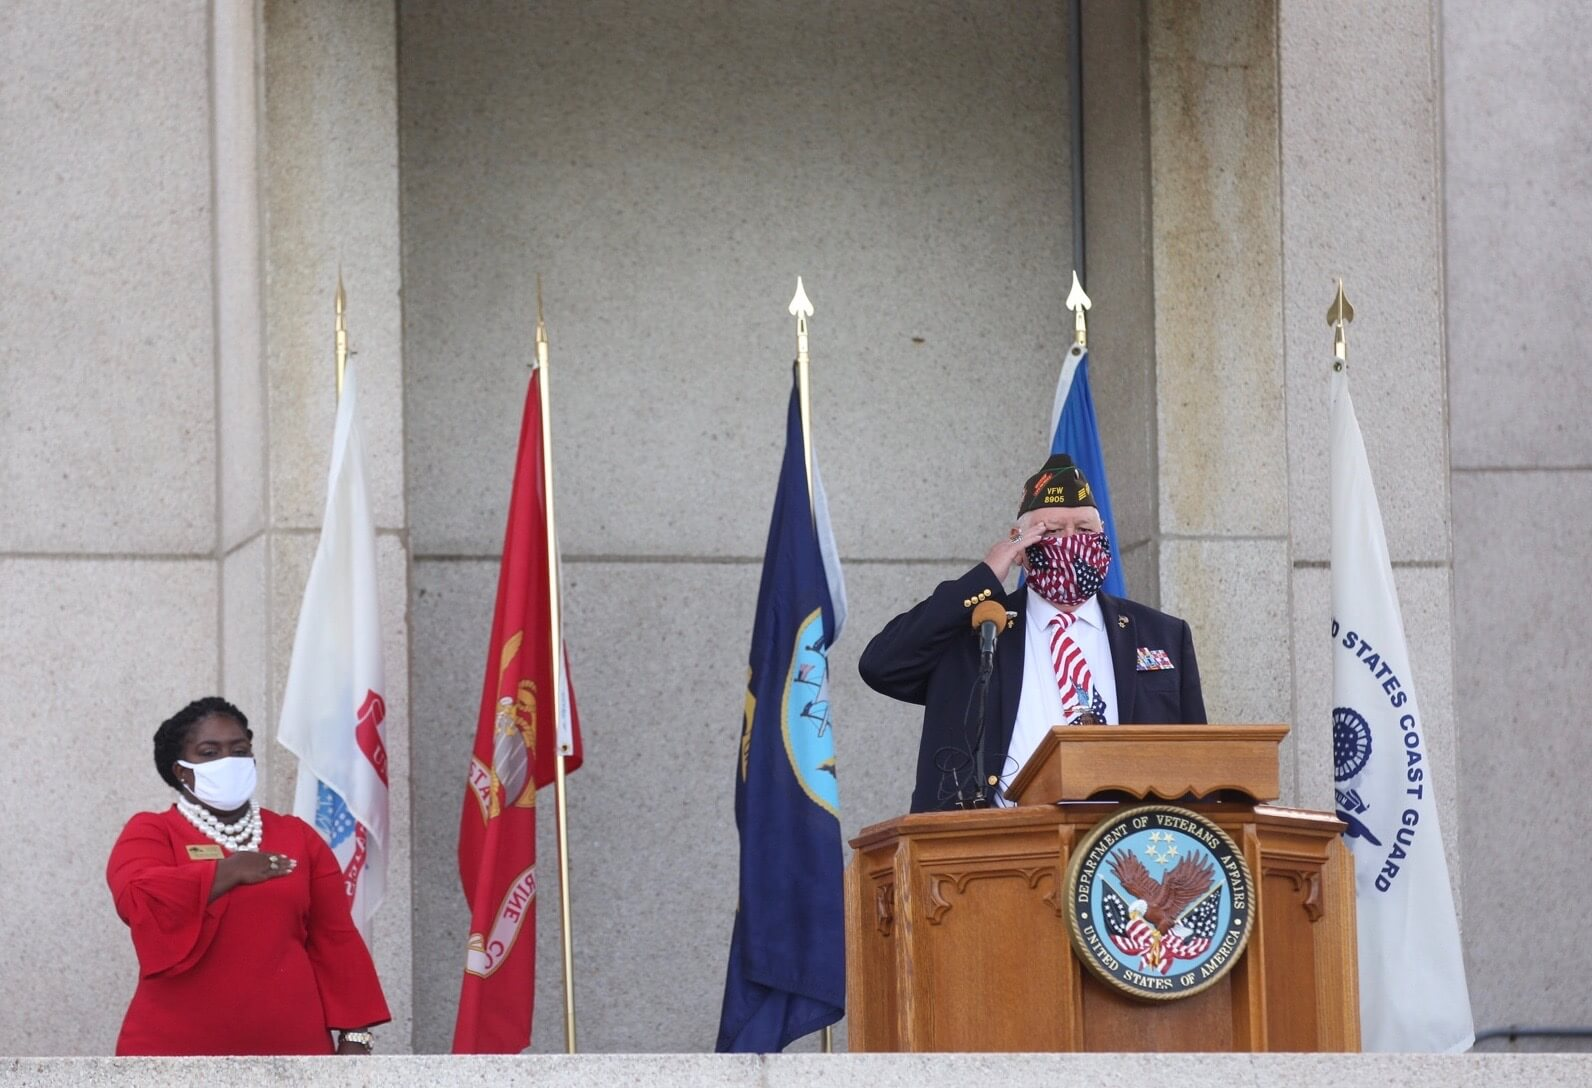 Allan Perkins, president of the National Cemetery Council of Greater Houston, led the Pledge of Allegiance and a Memorial Day prayer.